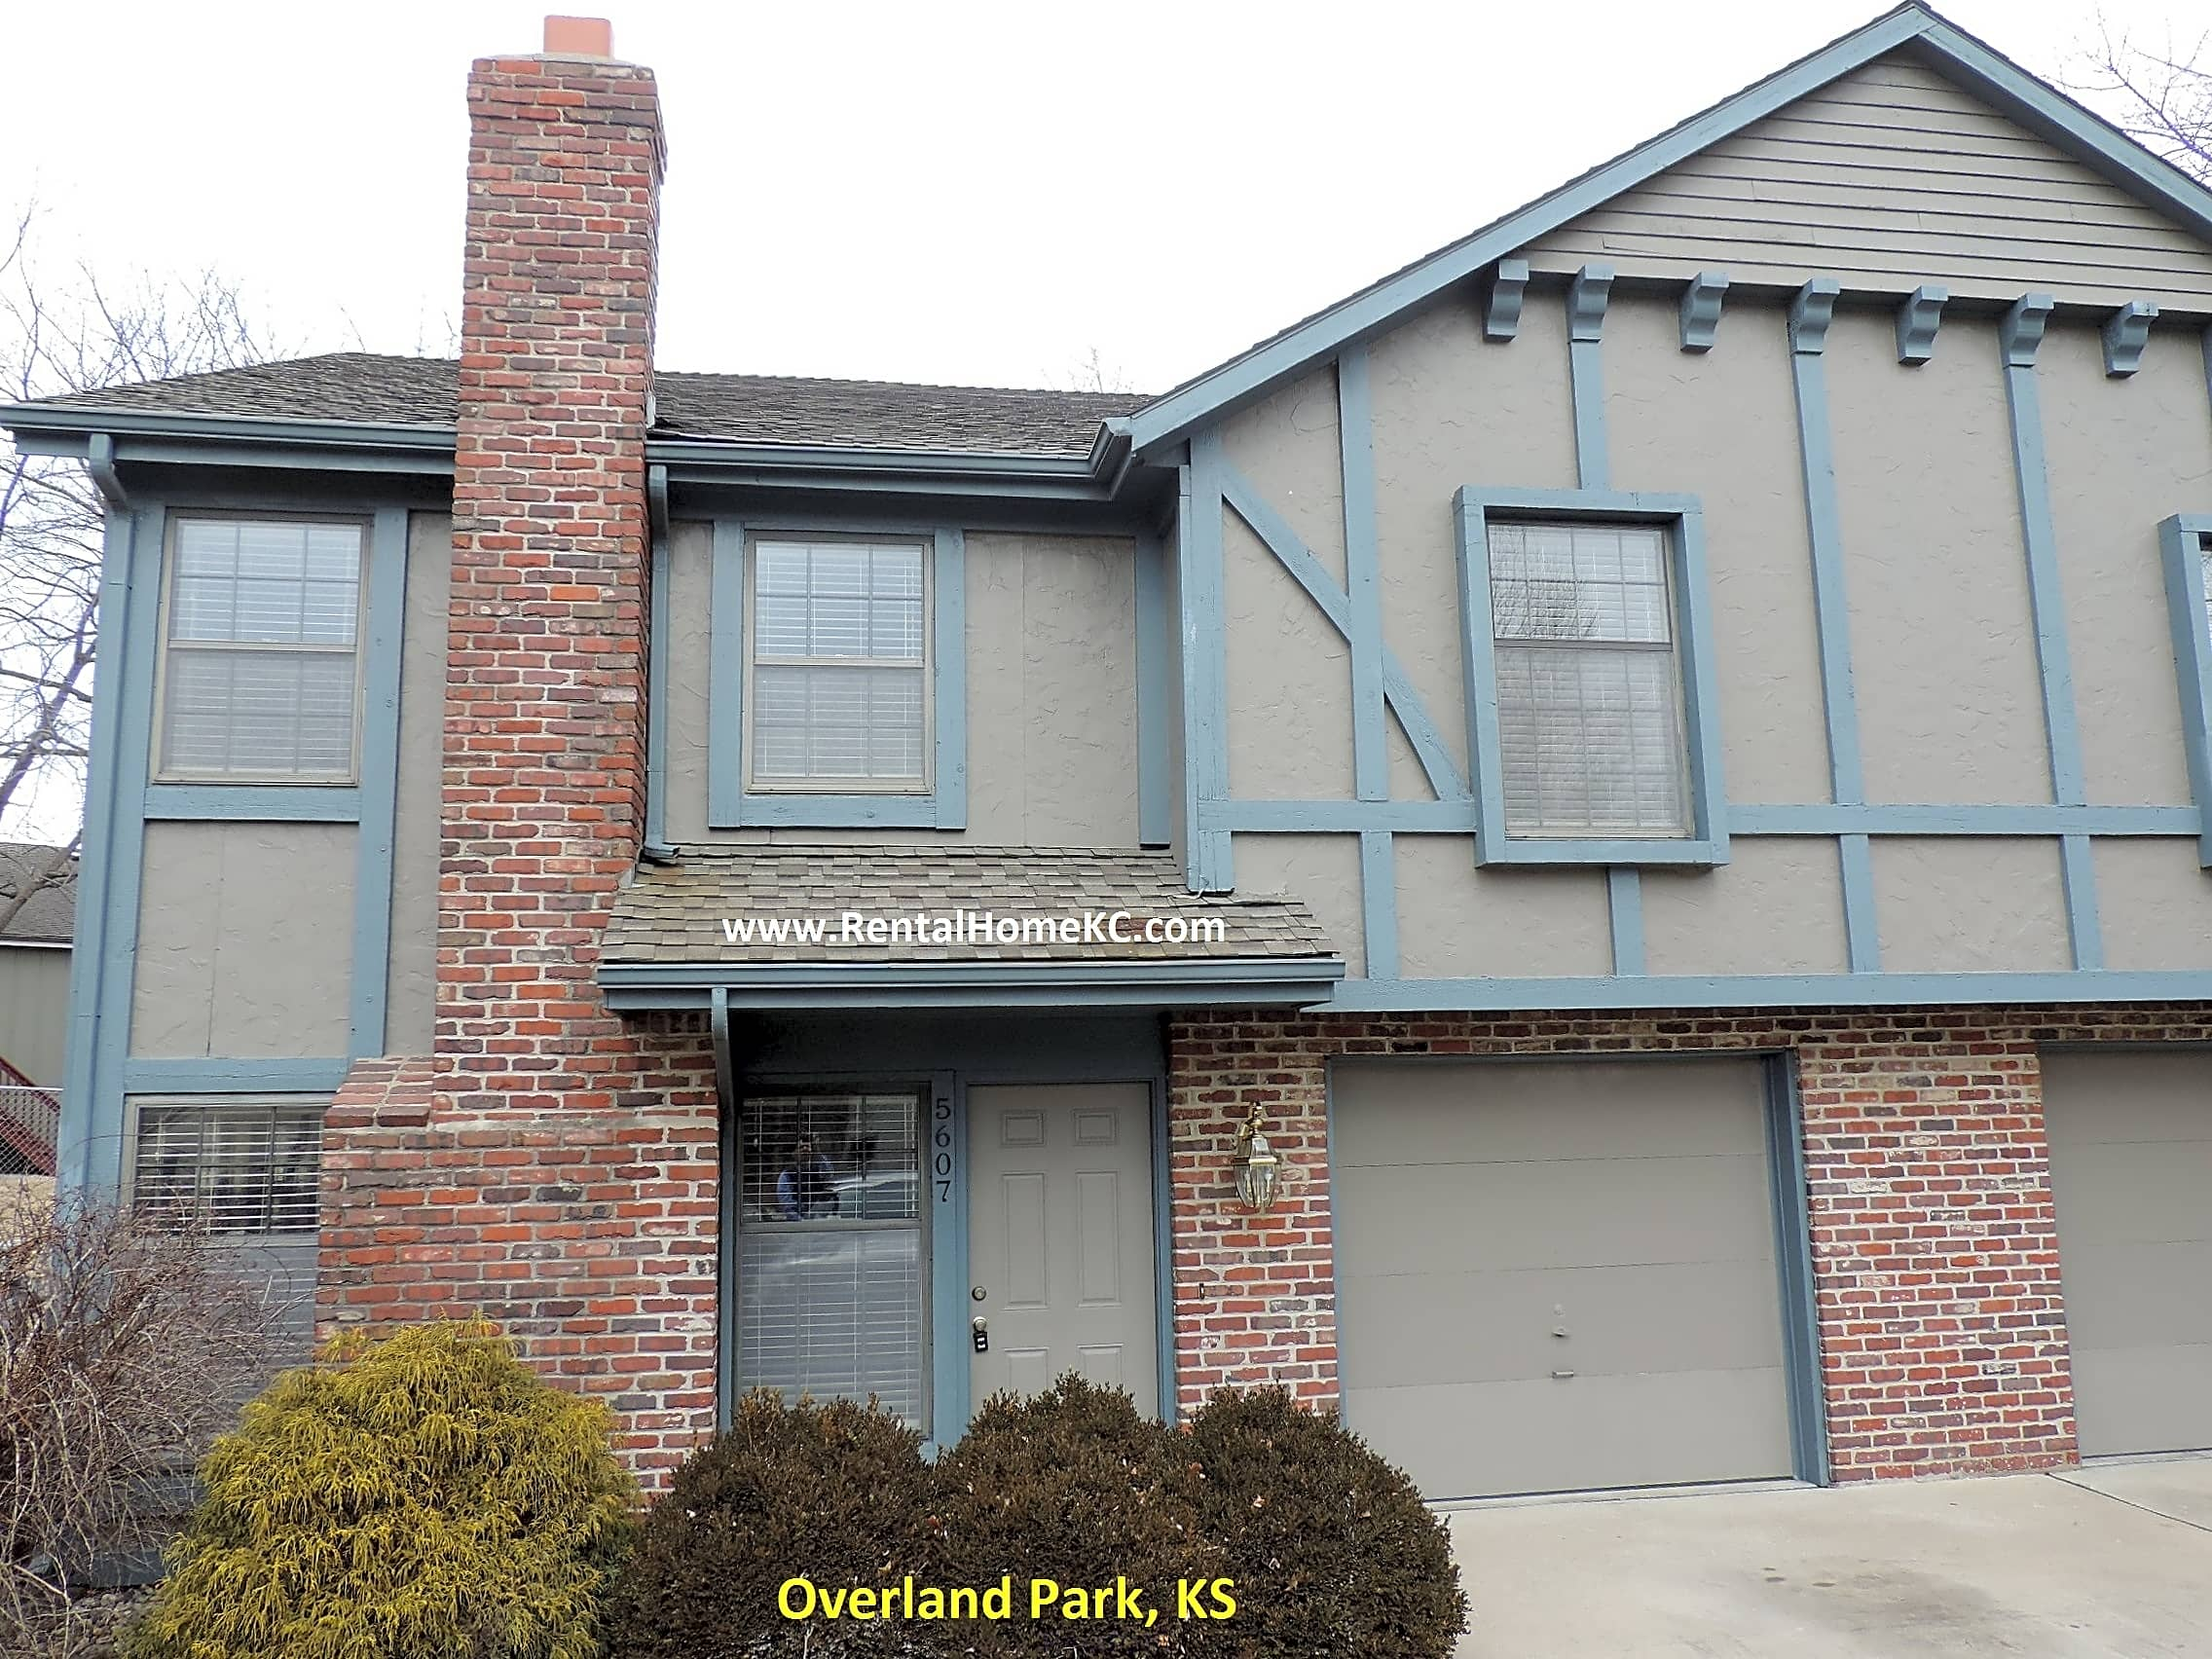 3 bedroom 2 bath freshly remodeled townhouse for l One bedroom apartments in overland park ks